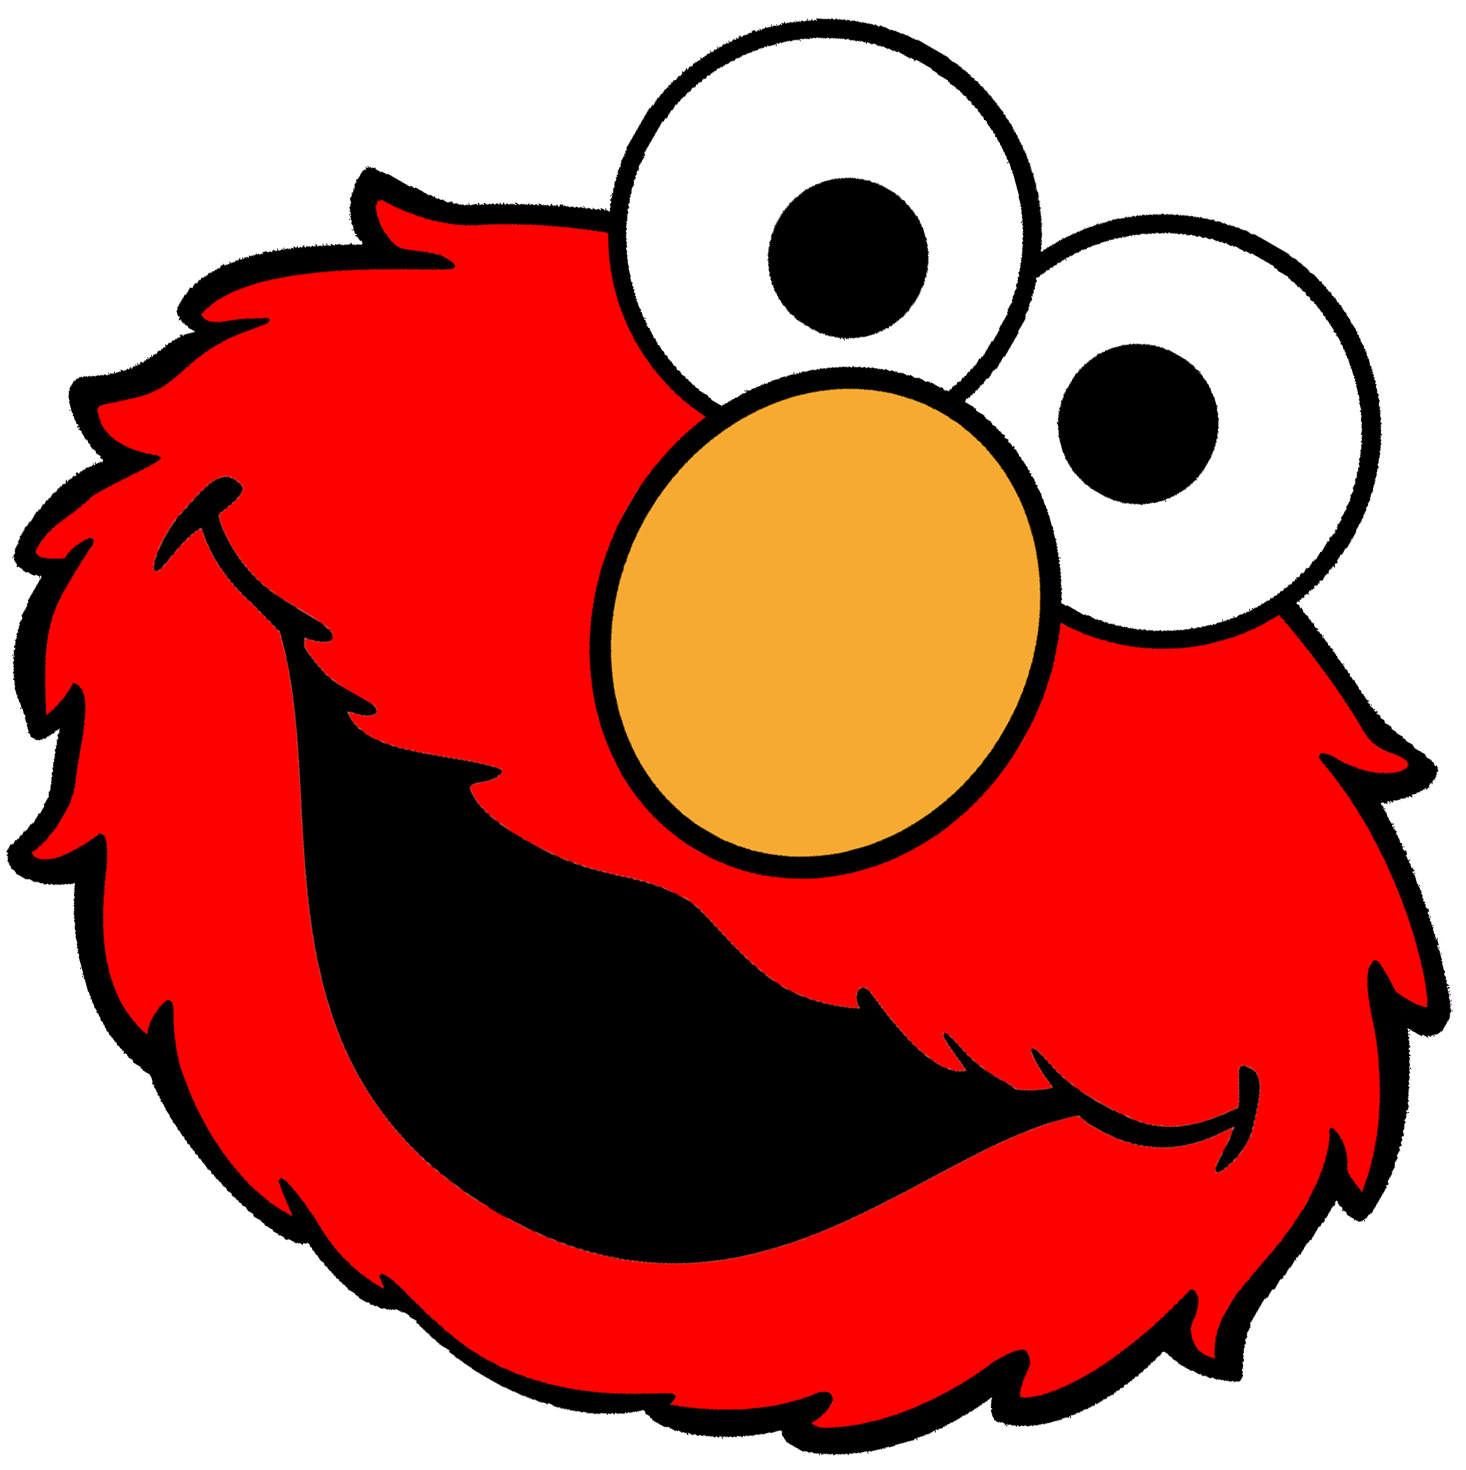 Elmo google search kid crafts pinterest elmo google planning a sesame street theme party for your two year old check out these fun elmo party games for toddlers complete with awesome prize ideas pronofoot35fo Choice Image